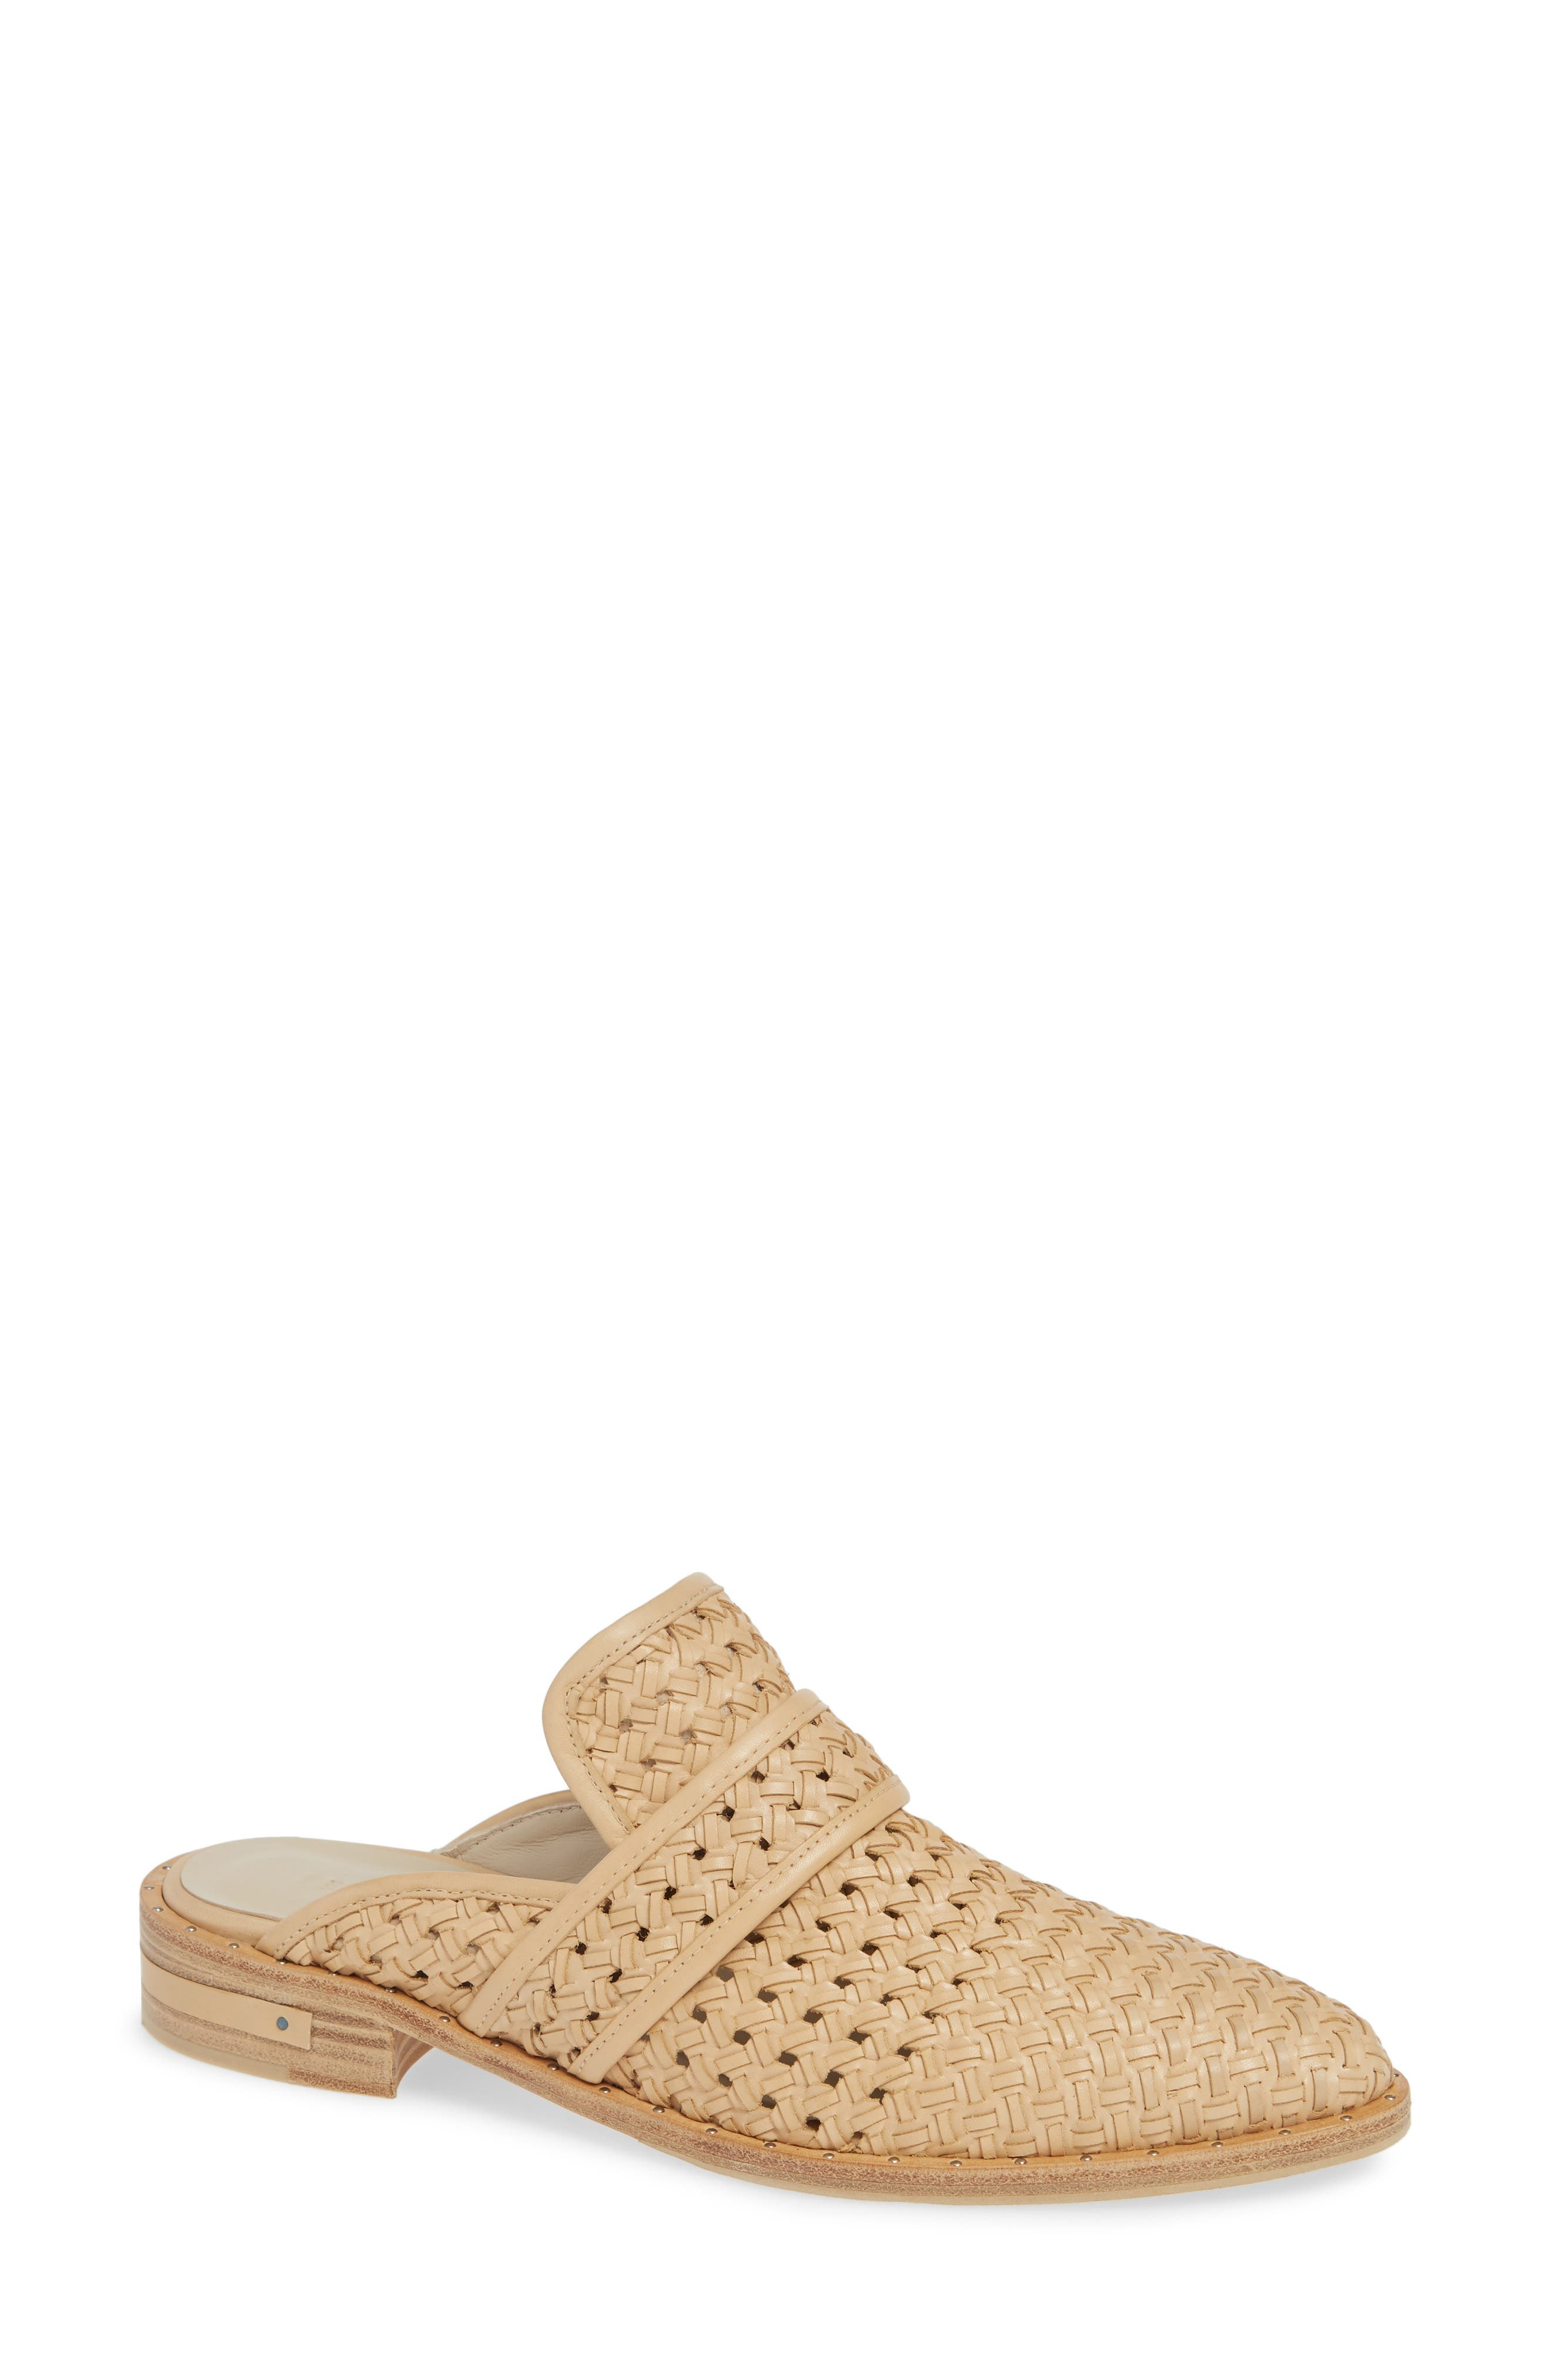 Keen Loafer Mule,                             Main thumbnail 1, color,                             NUDE WOVEN